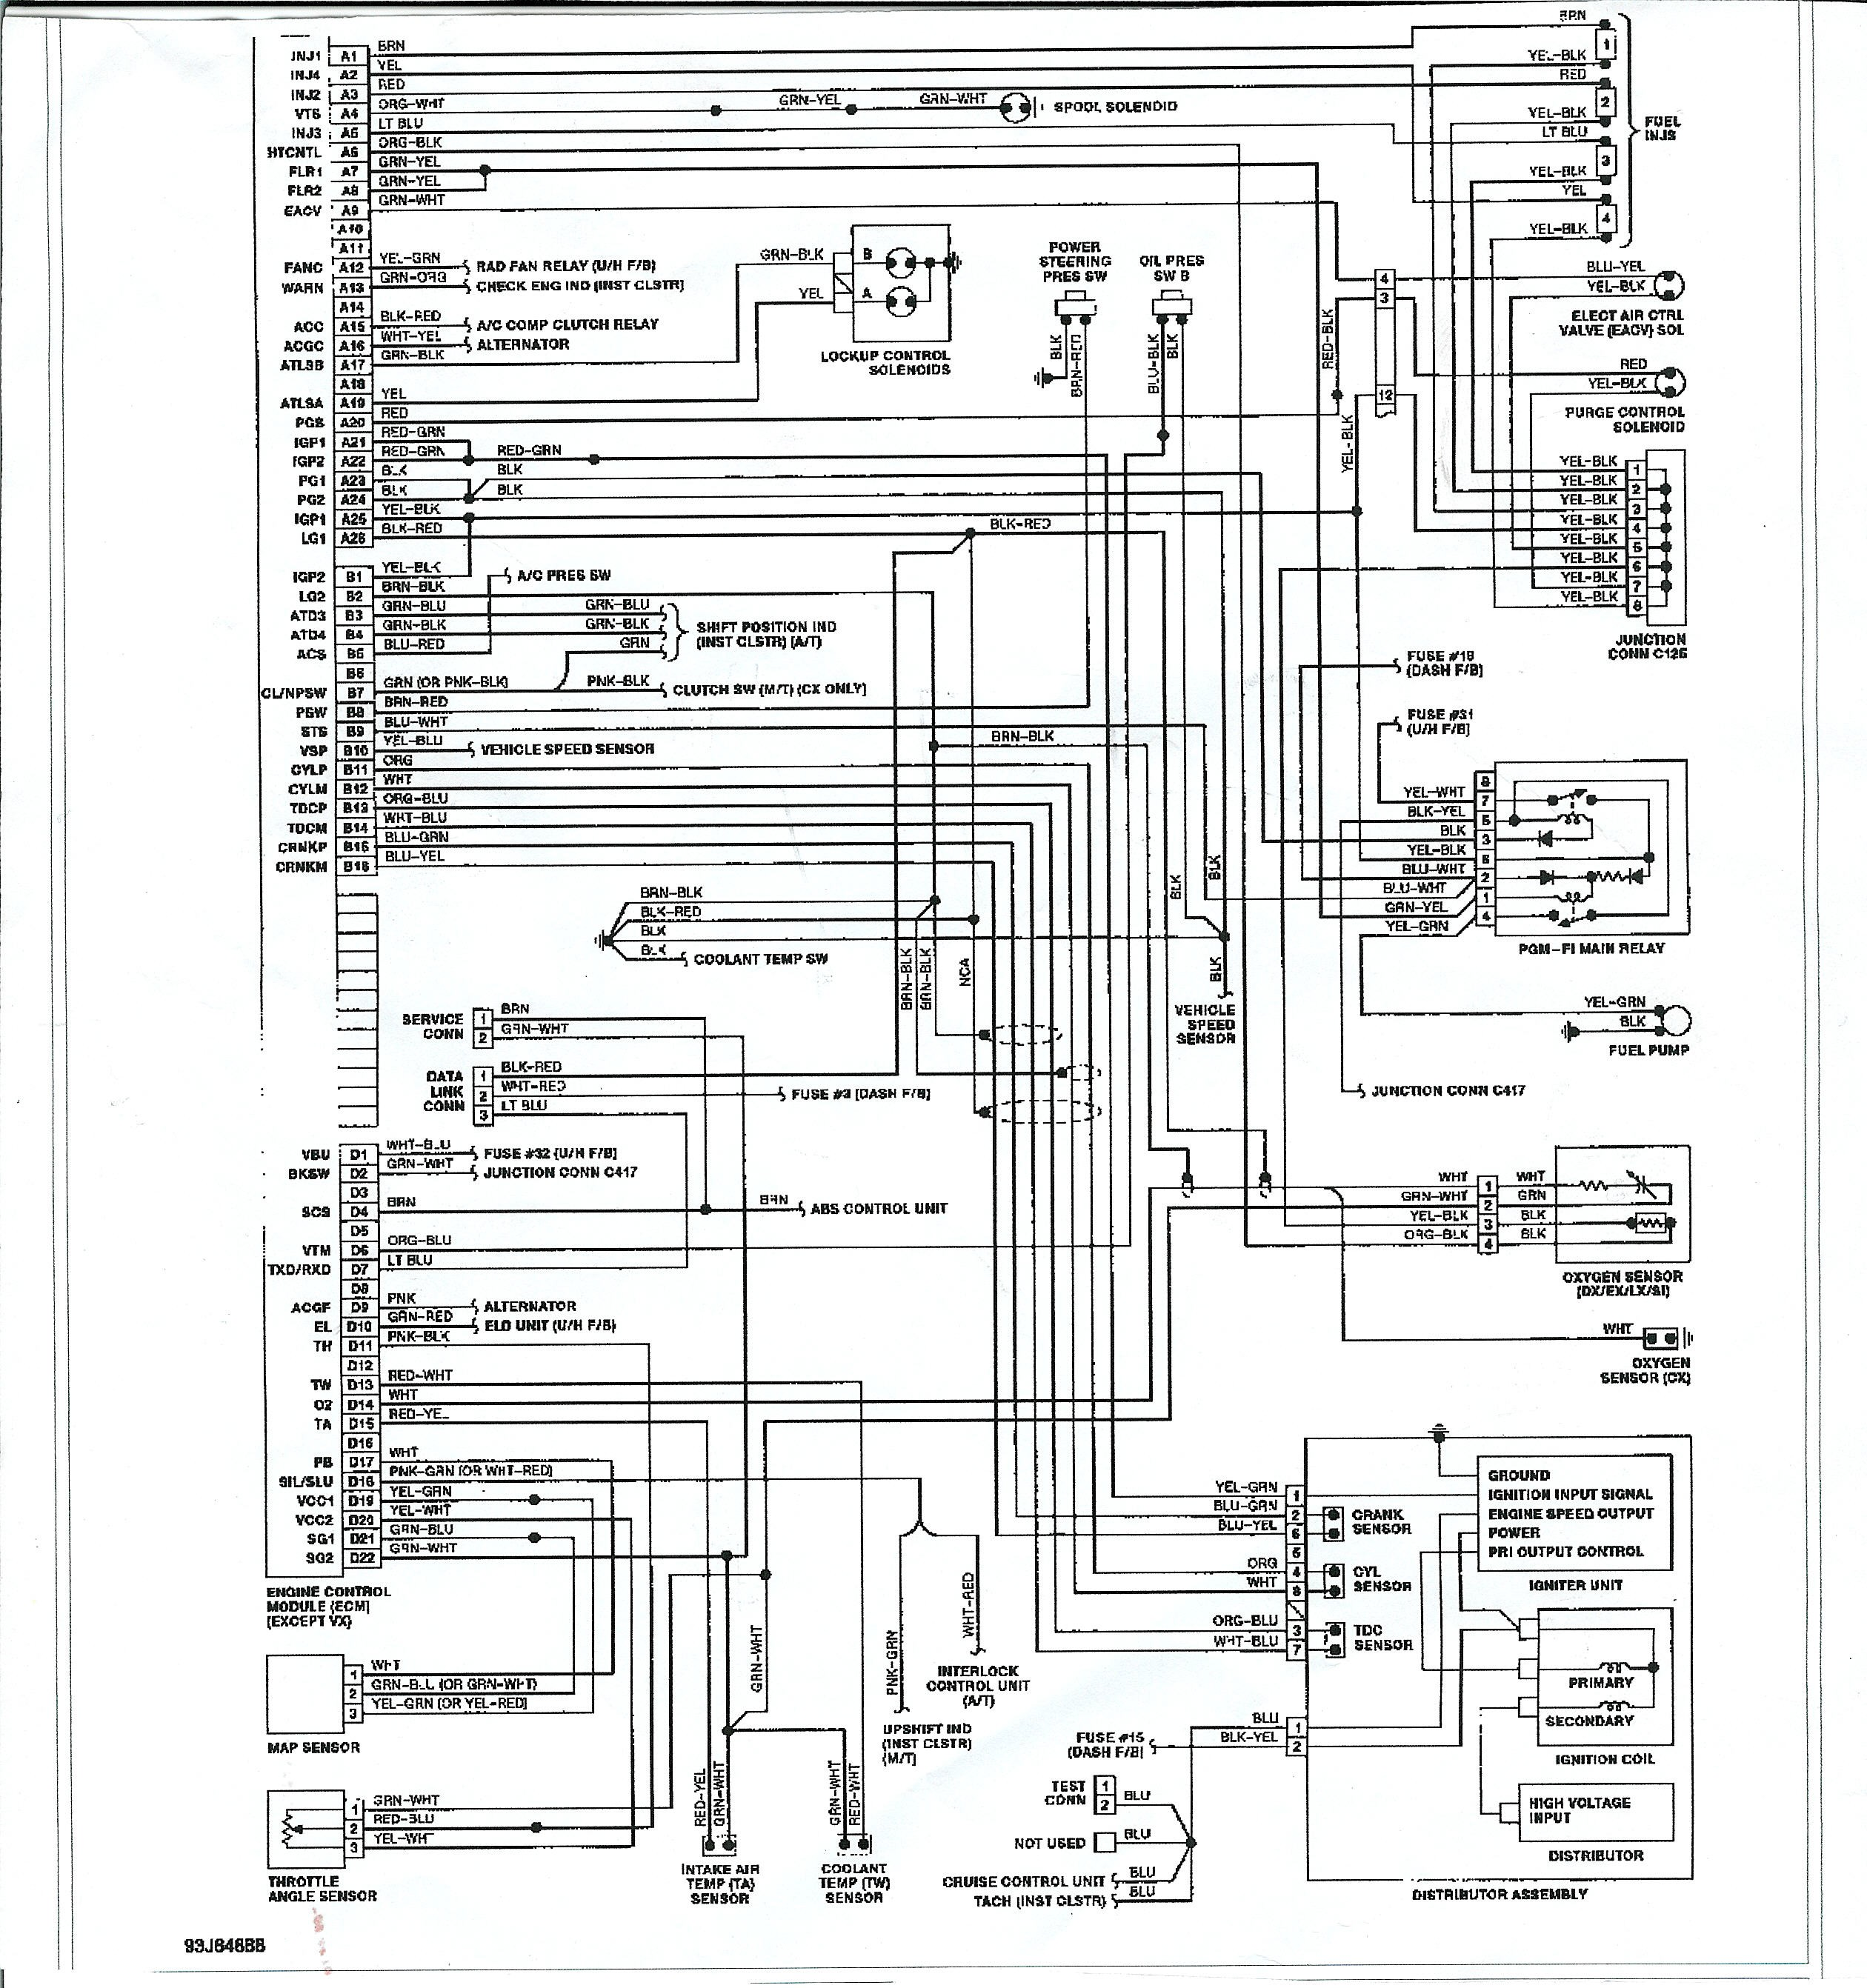 1998 Honda Civic Engine Diagram Vw Transporter Wiring Diagram 95 ...